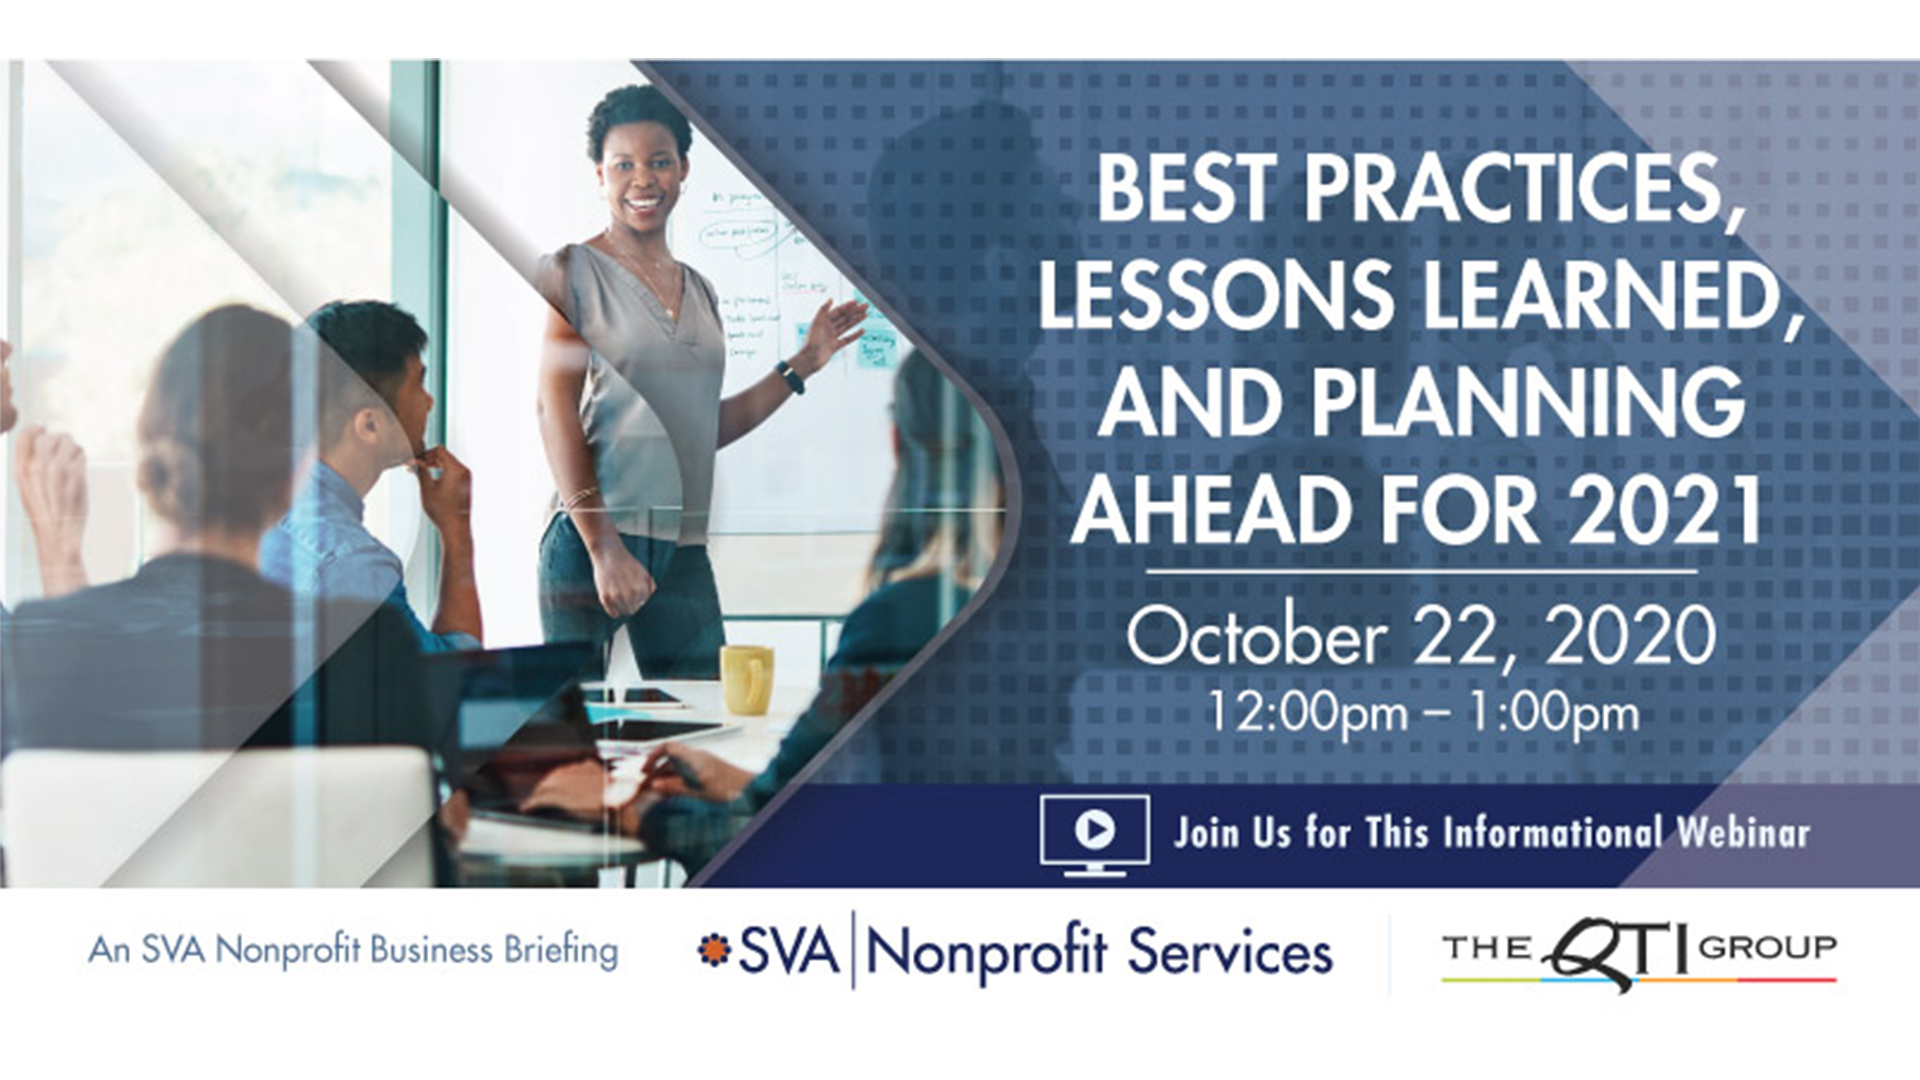 Nonprofit Best Practices, Lessons Learned, and Planning Ahead for 2021